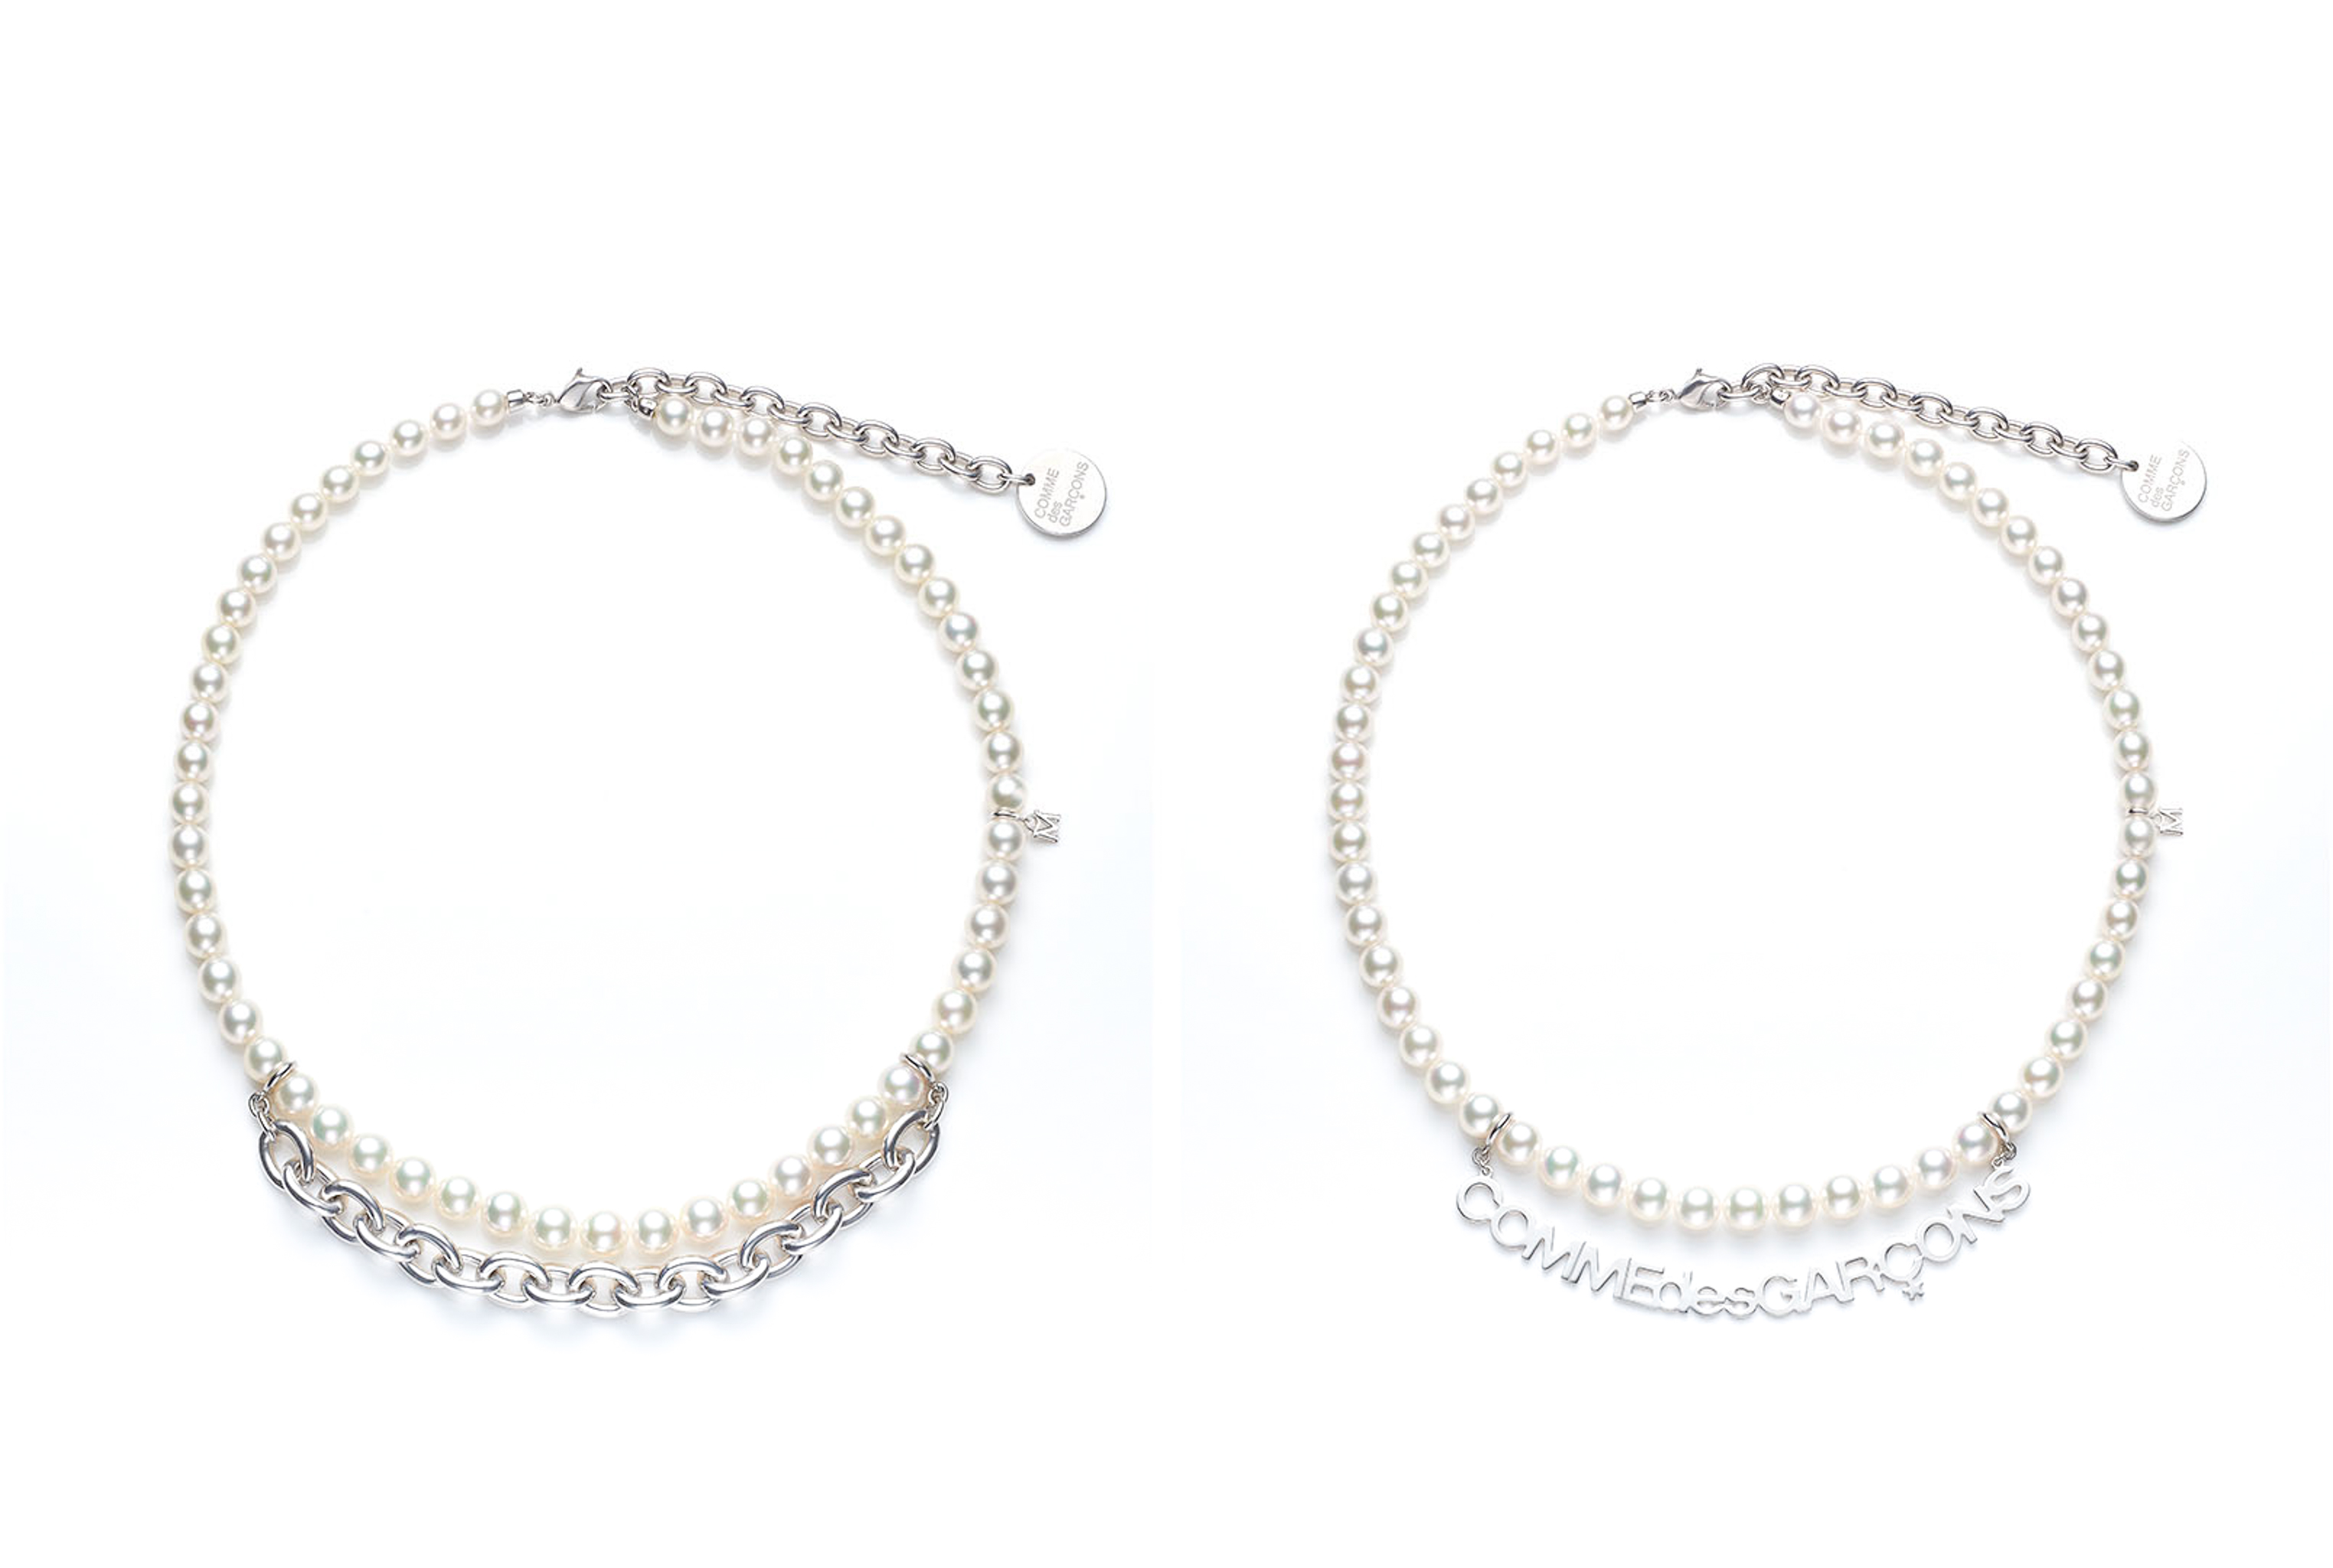 Necklaces from the collaboration between Comme des Garcons and Mikimoto.